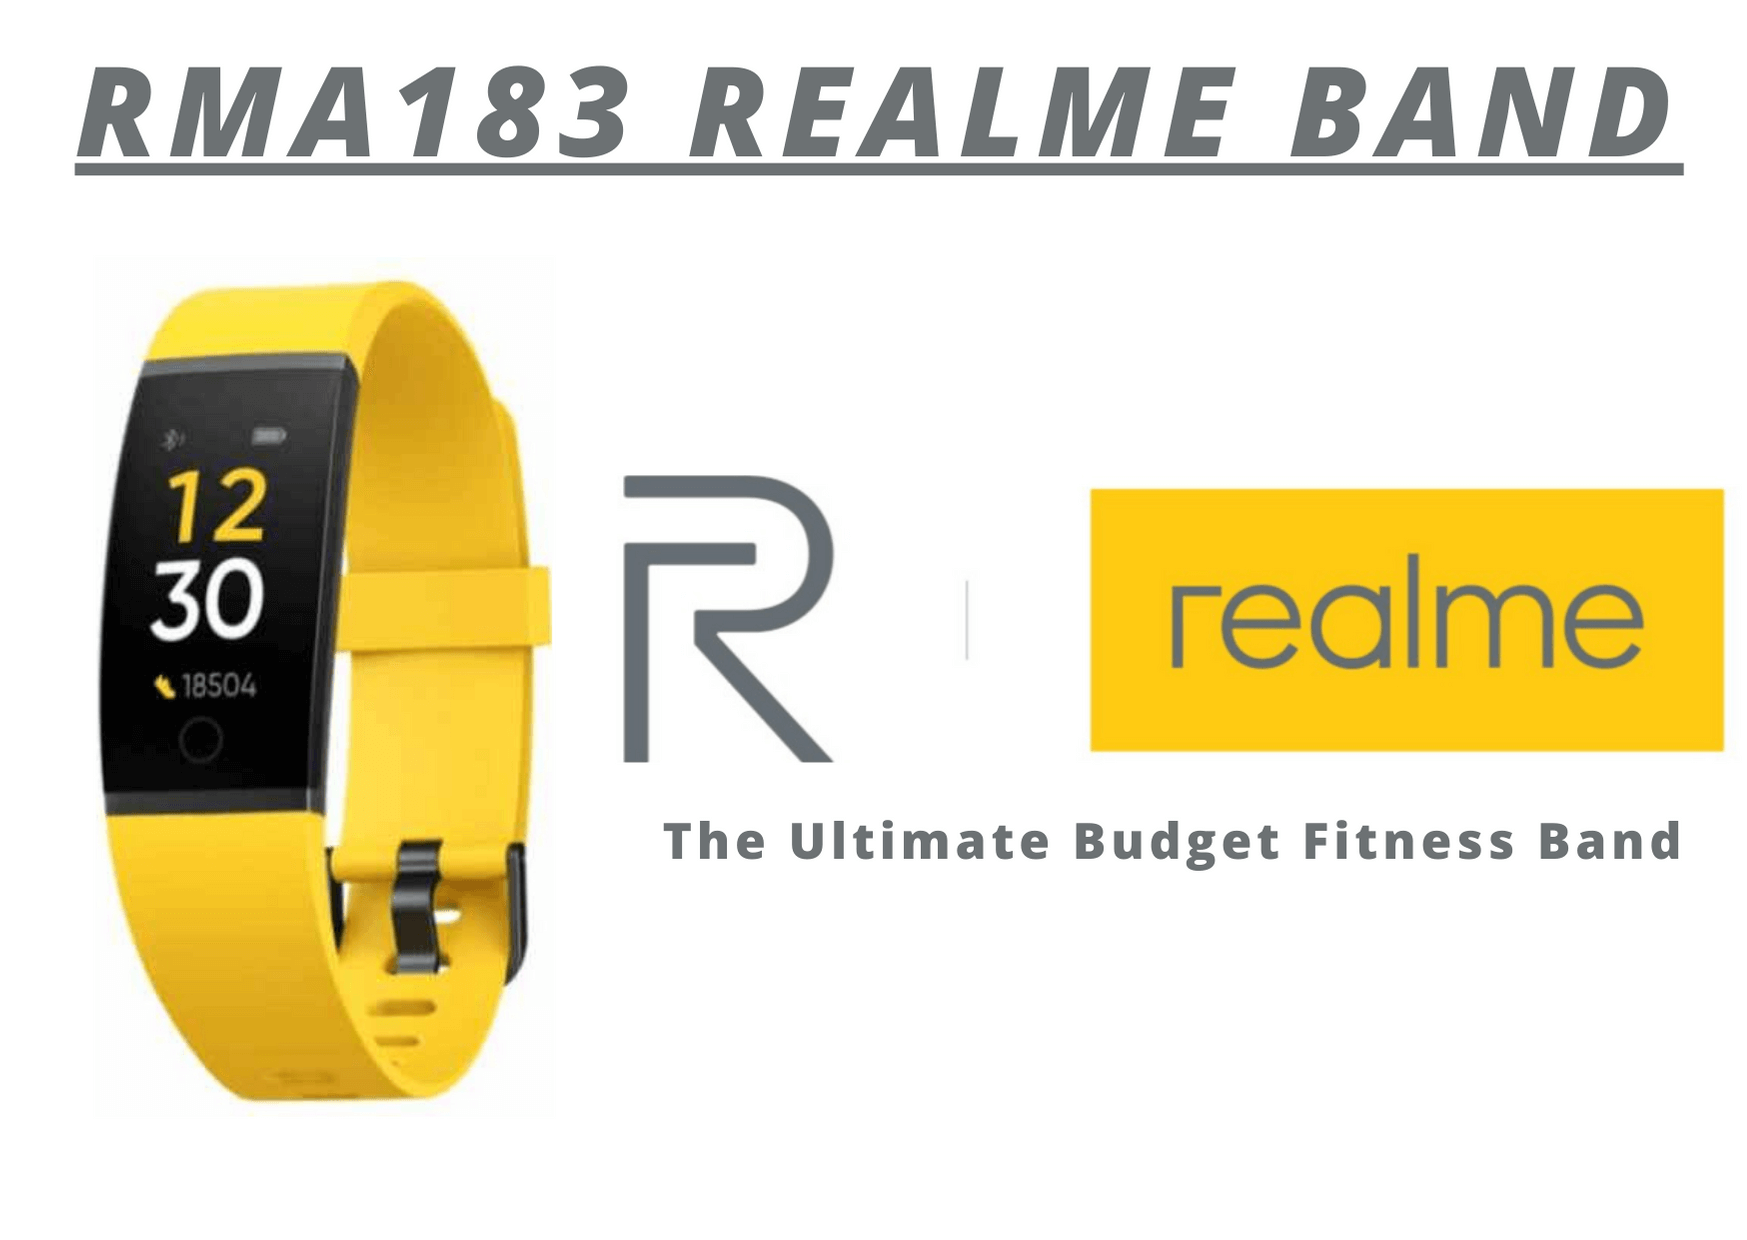 RMA183 Realme Band | The Ultimate Budget Fitness Band